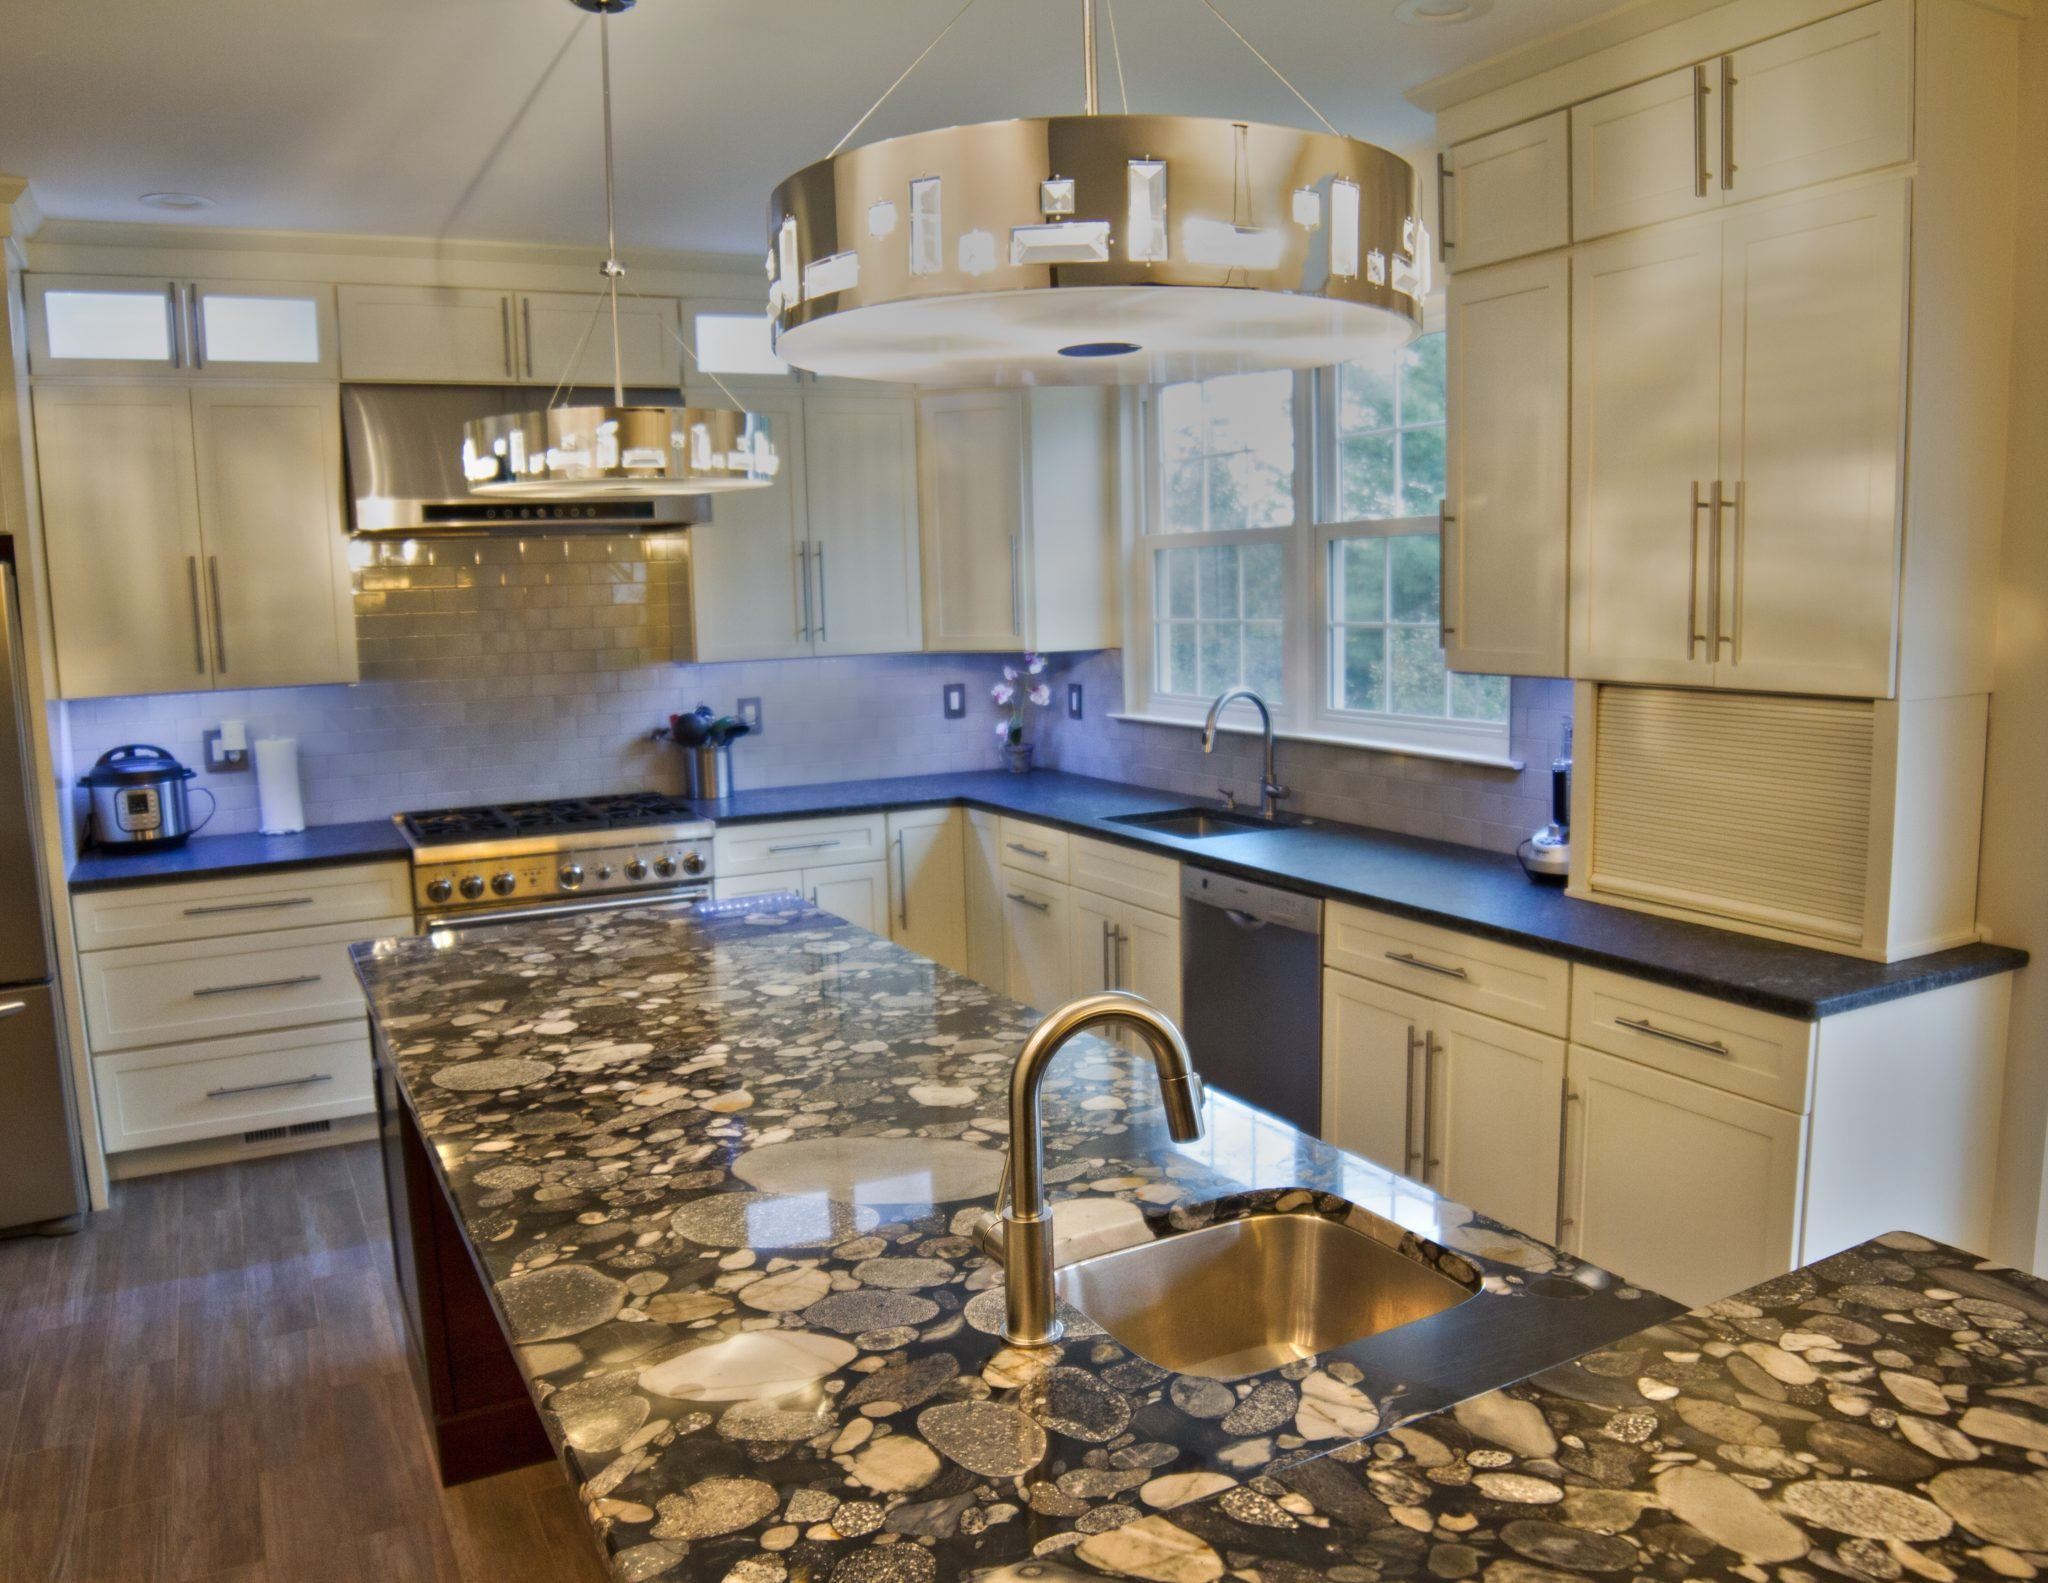 whats good bad different types countertop types of kitchen countertops Different kitchen countertop properties and pricing